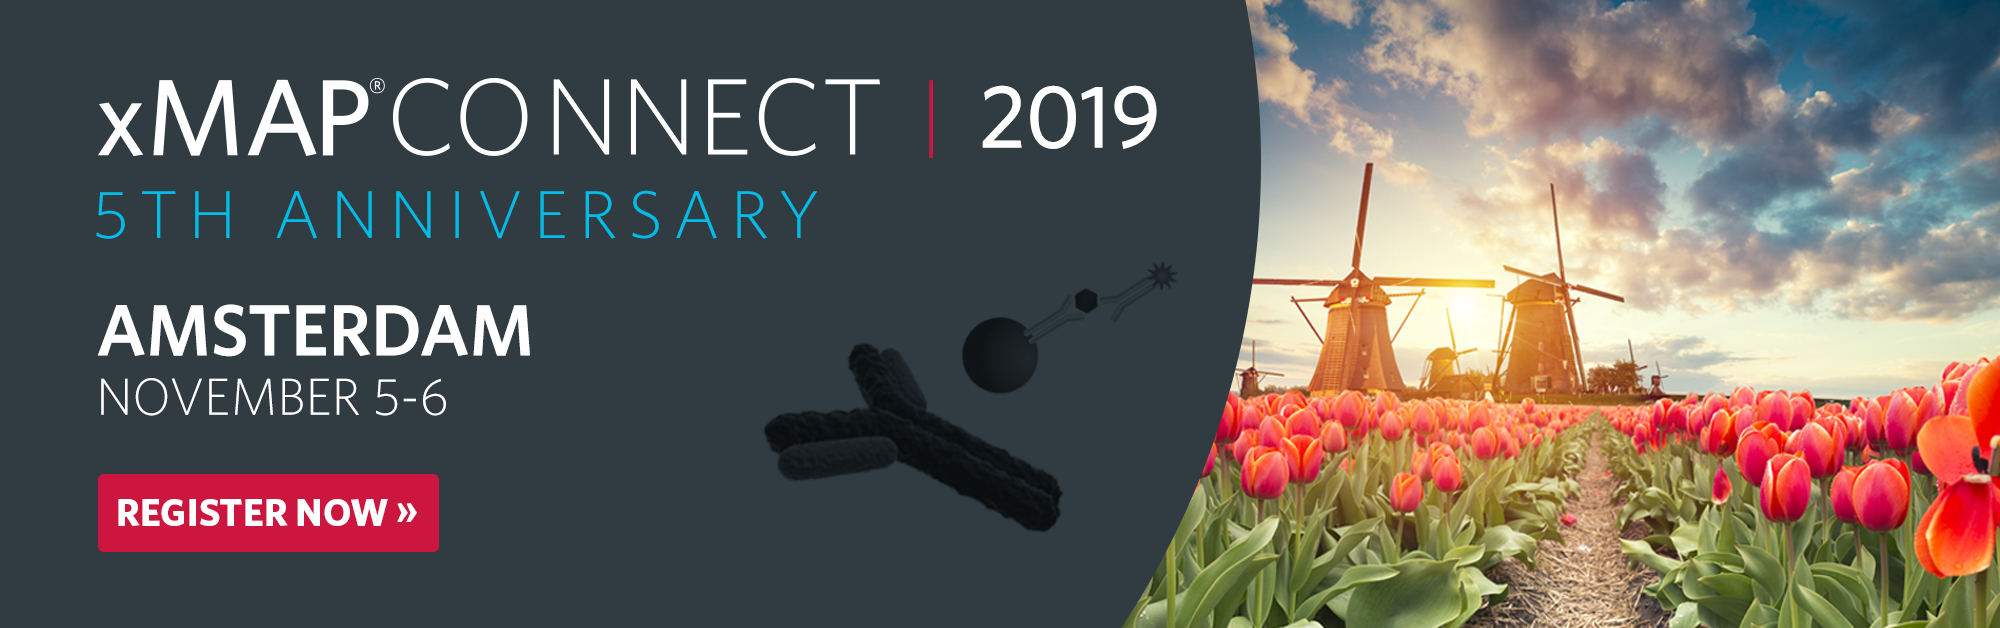 xMAP Connect Amsterdam 2019